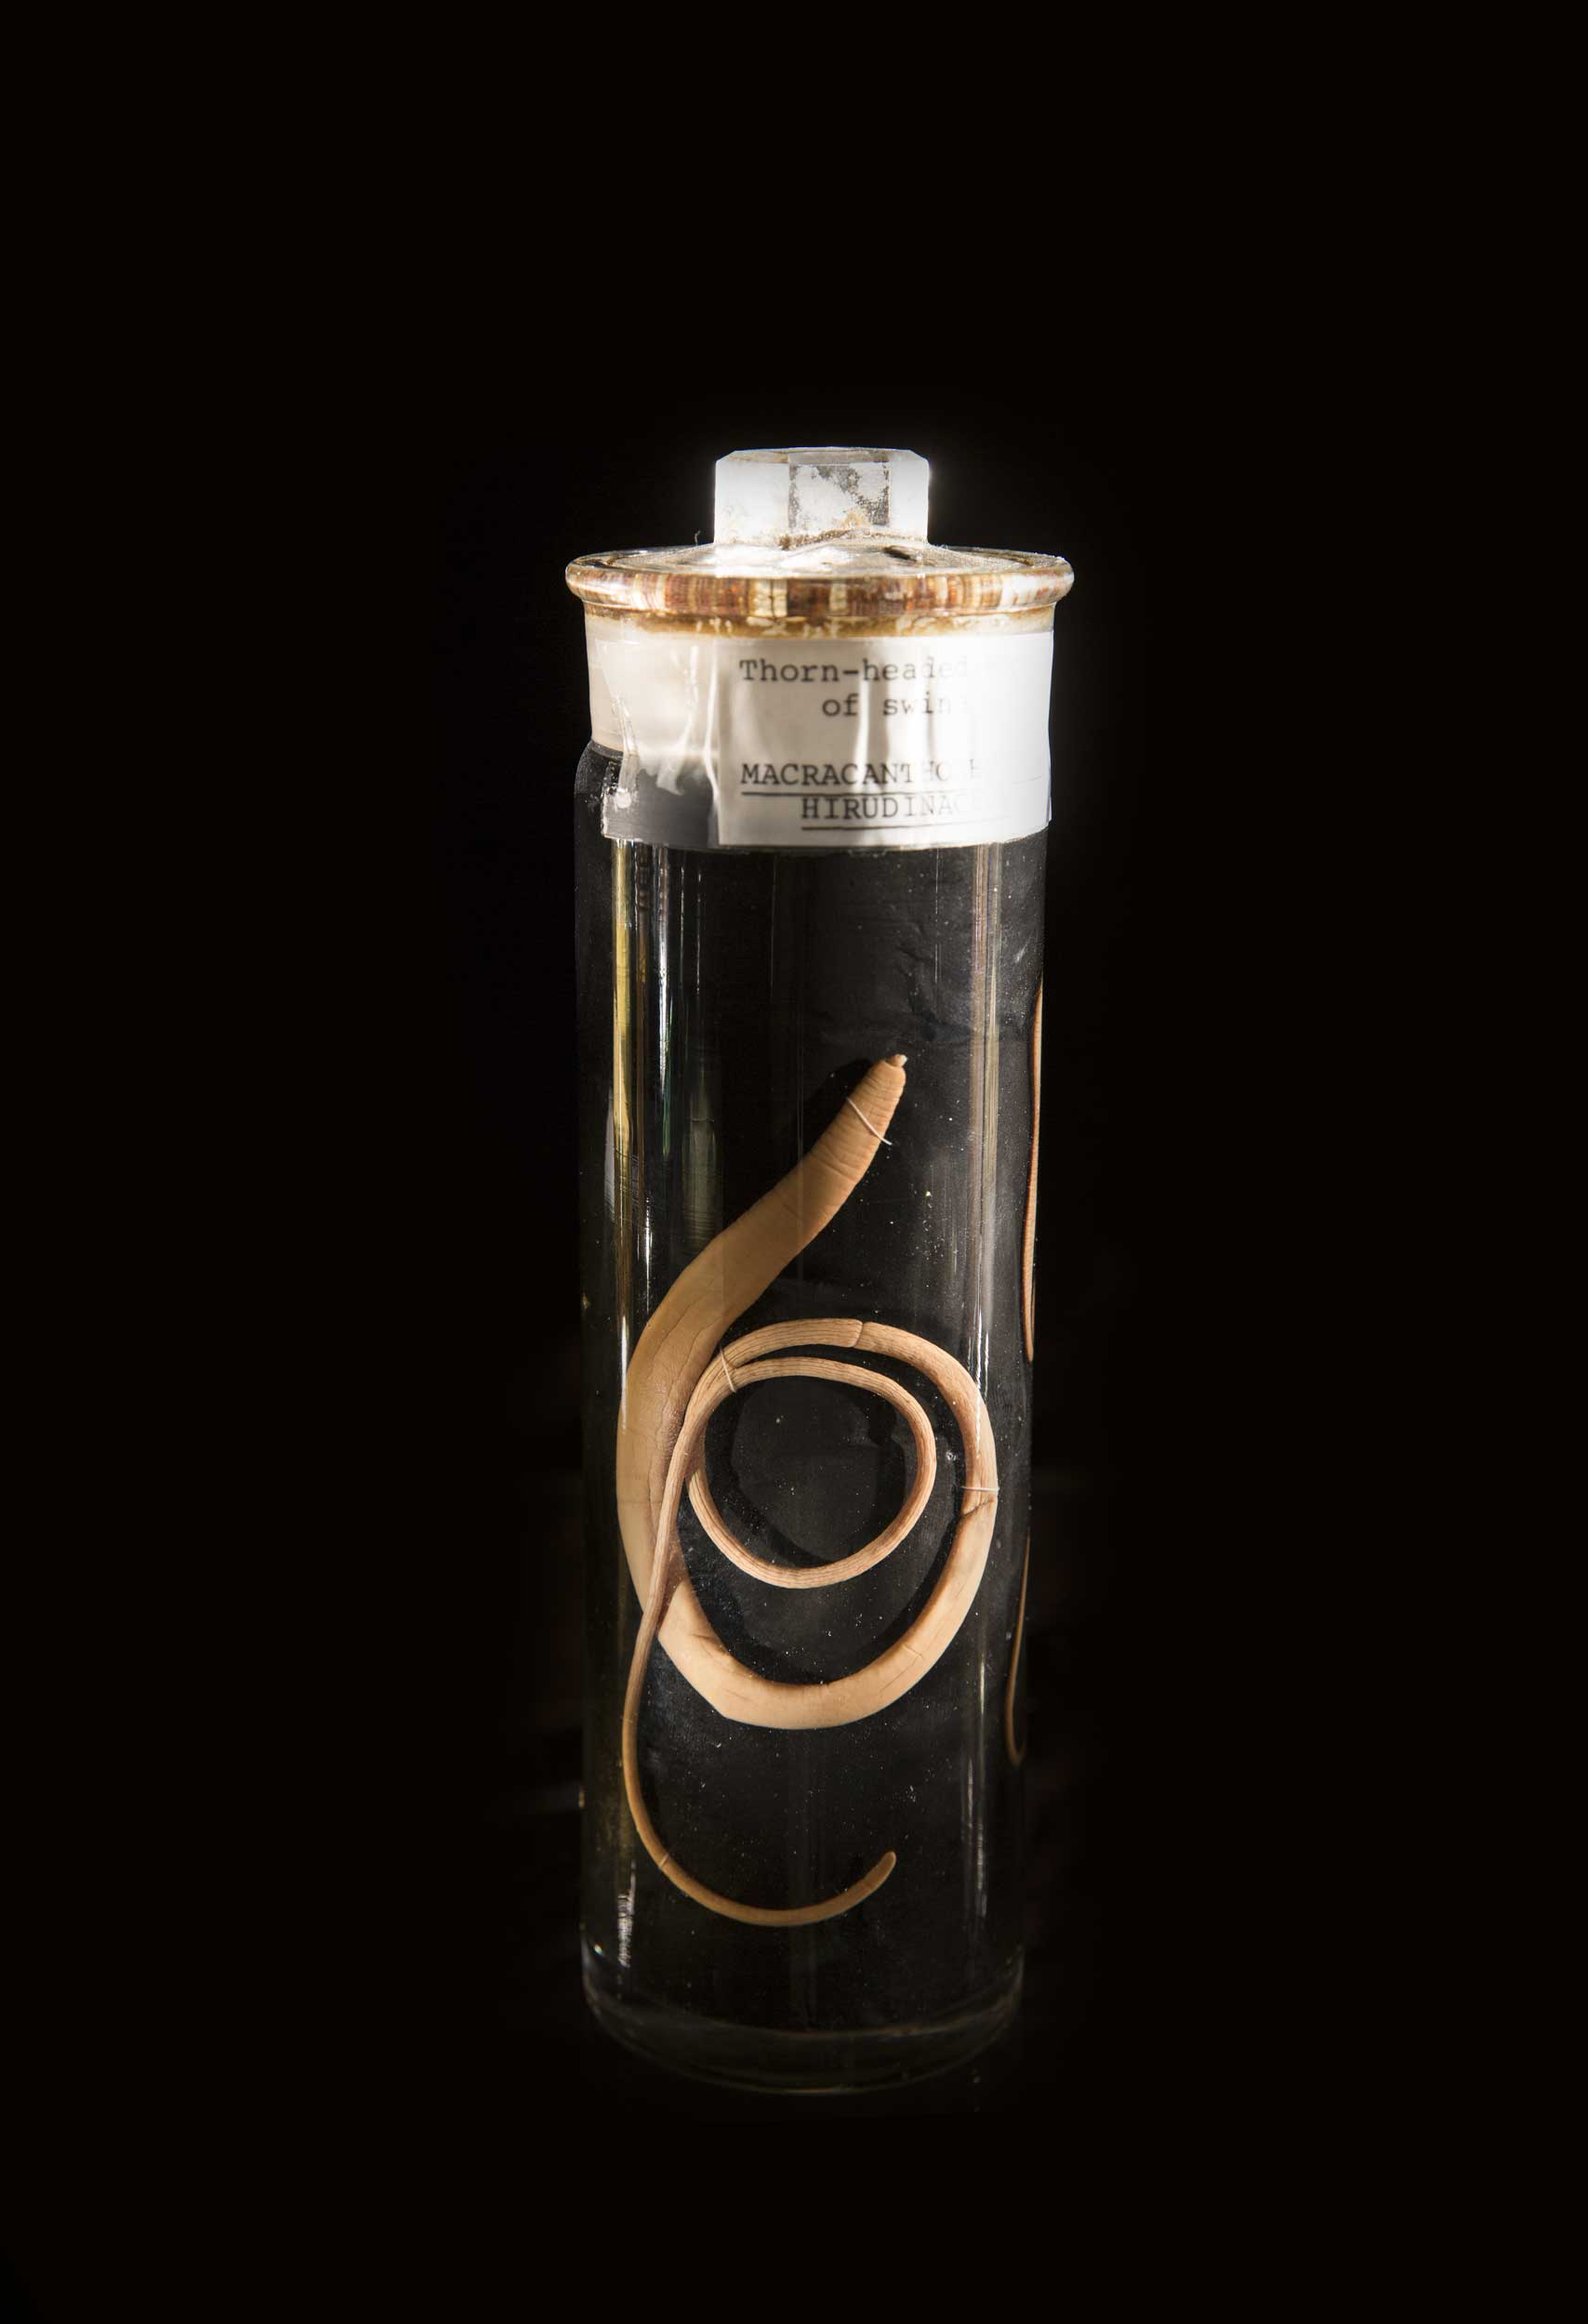 A parasite specimen from the Smithsonian's National Parasite Collection at the National Museum of Natural History. The species, Macracanthorhynchus hirudinaceus, is an acanthocephalan parasite and is usually found in pigs. Parasites often have complex life cycles that involve several species of animals as intermediate hosts, and this particular parasite species spends part of its larval stage in beetles. Image credit: Paul Fetters for the Smithsonian Institution